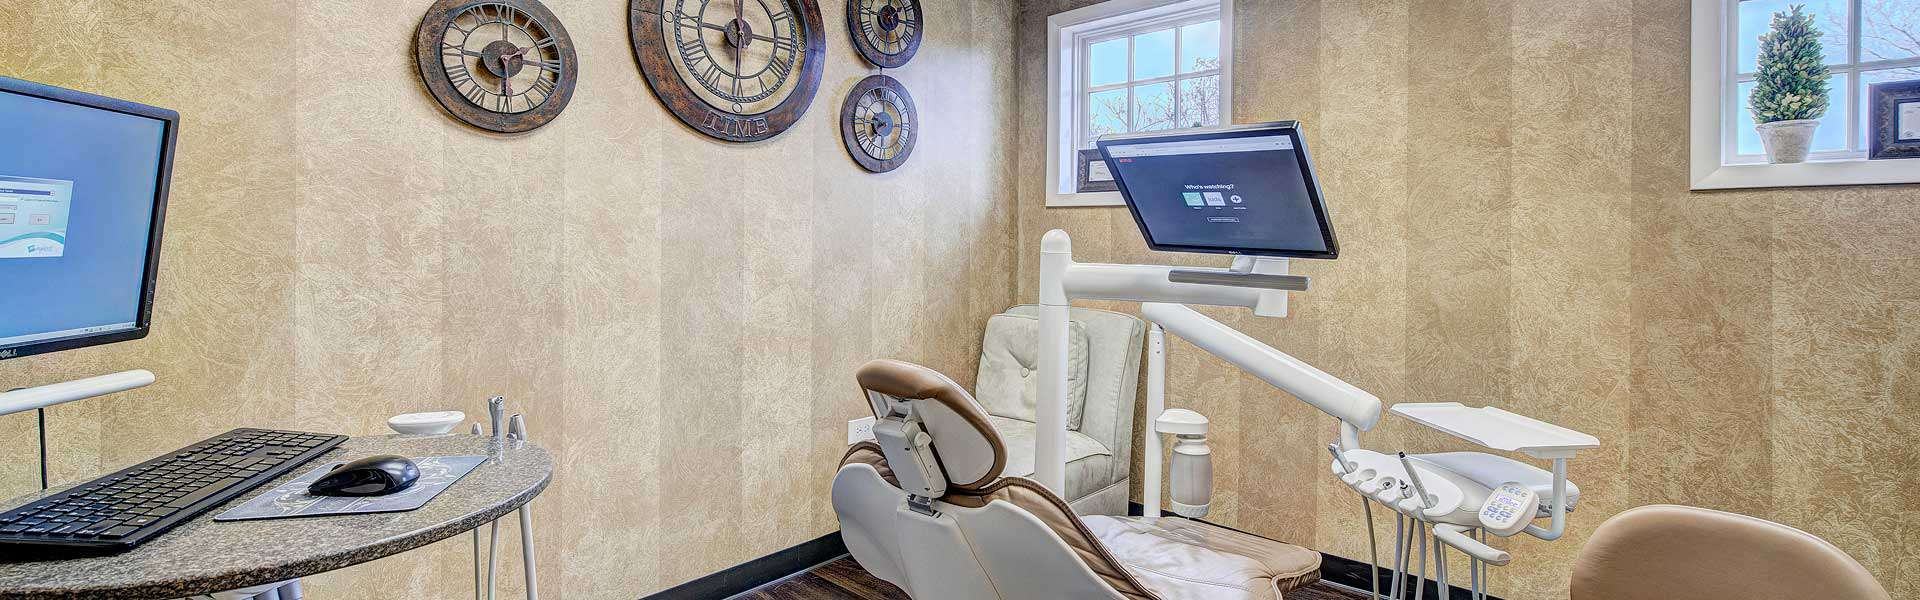 Office Tour hero Image - Long Grove Dental Studio